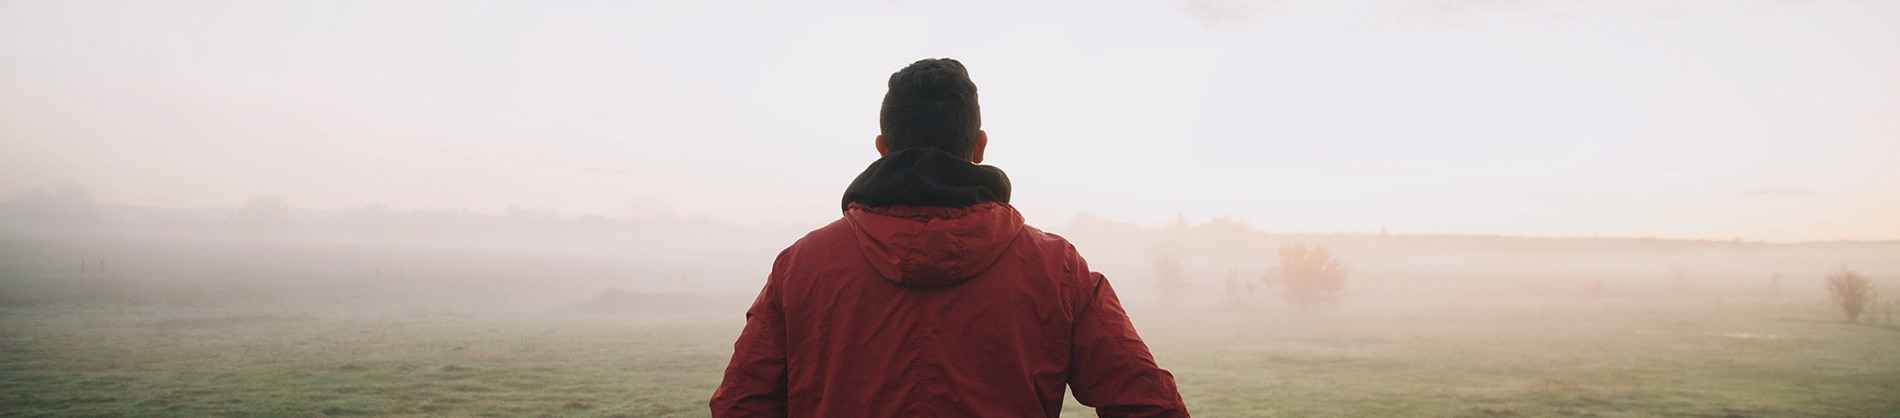 A man in a red jacket walking into a foggy field